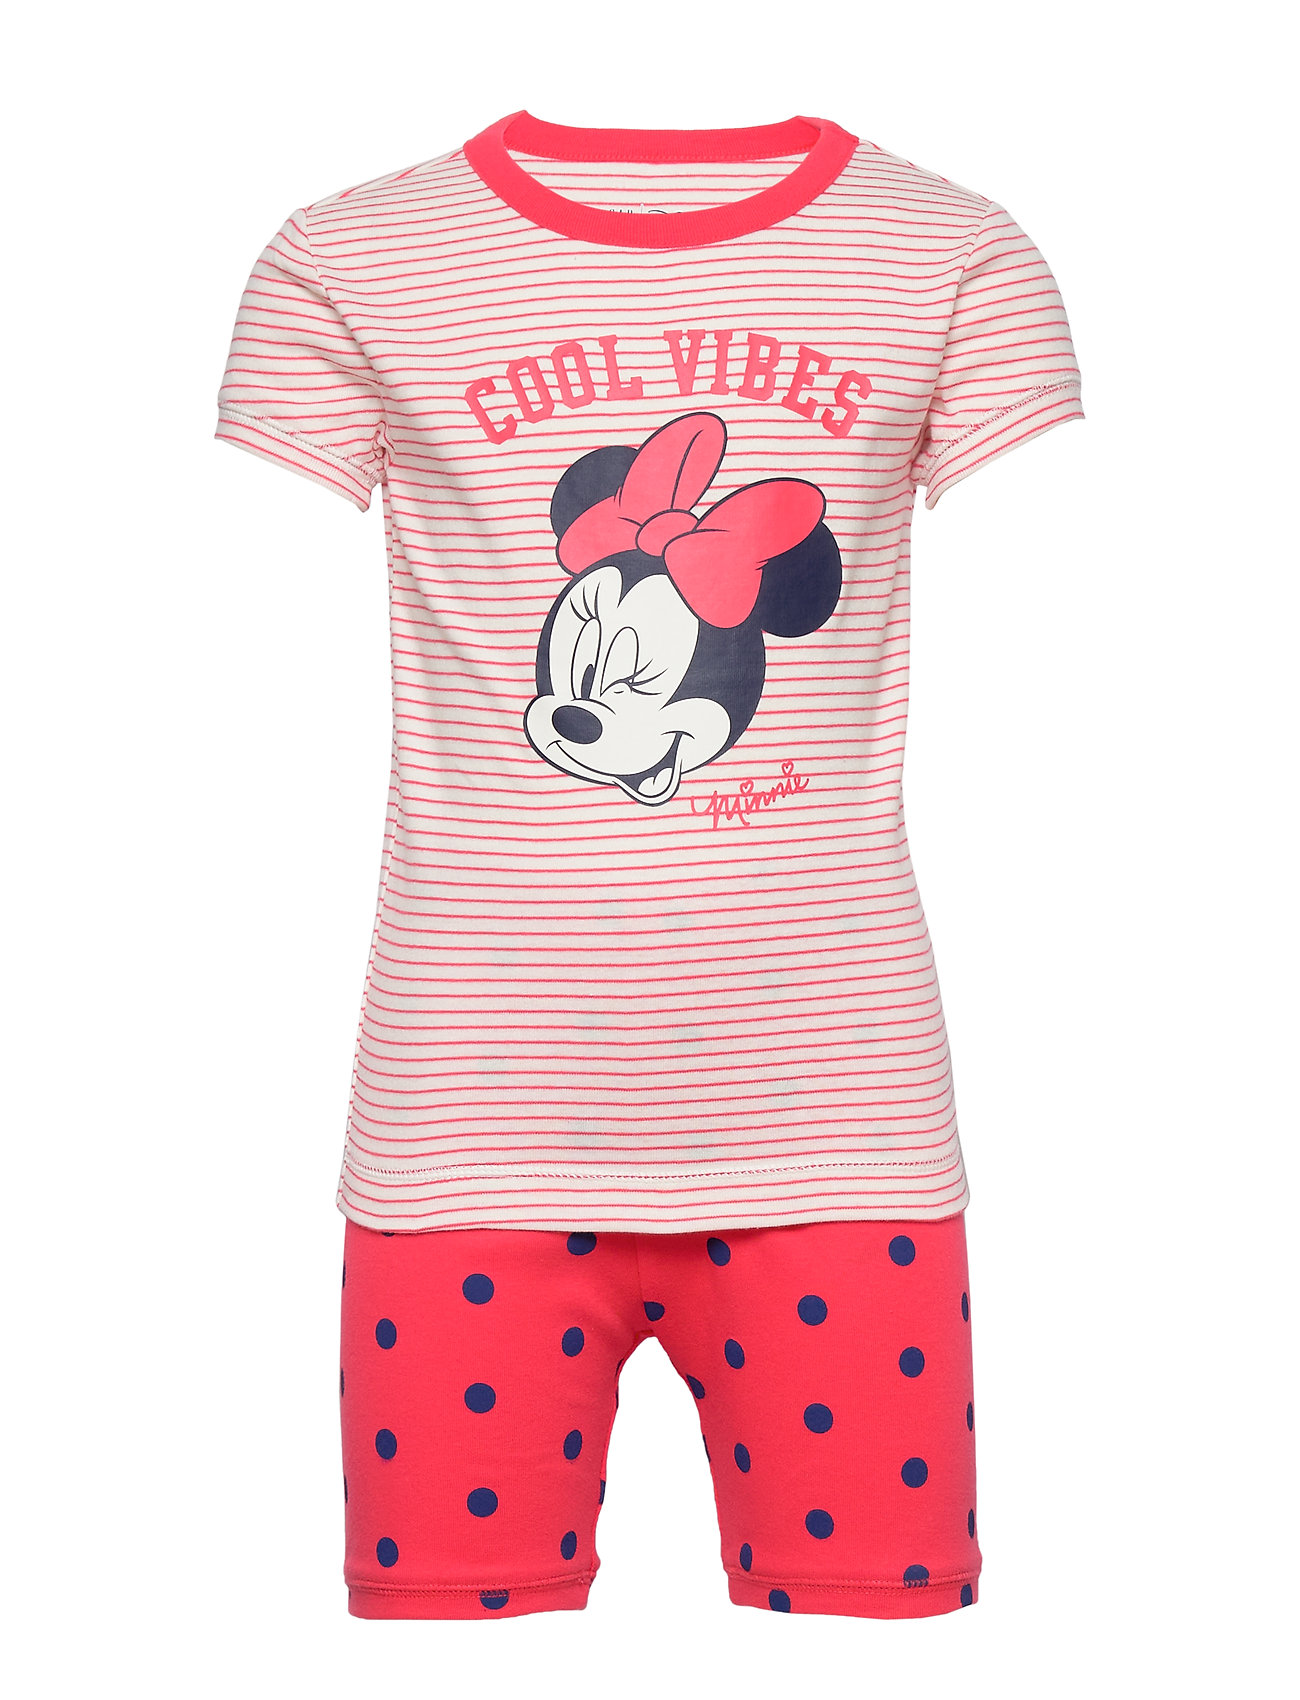 GAP GapKids | Disney Minnie Mouse PJ Set - MILK ZEBRA